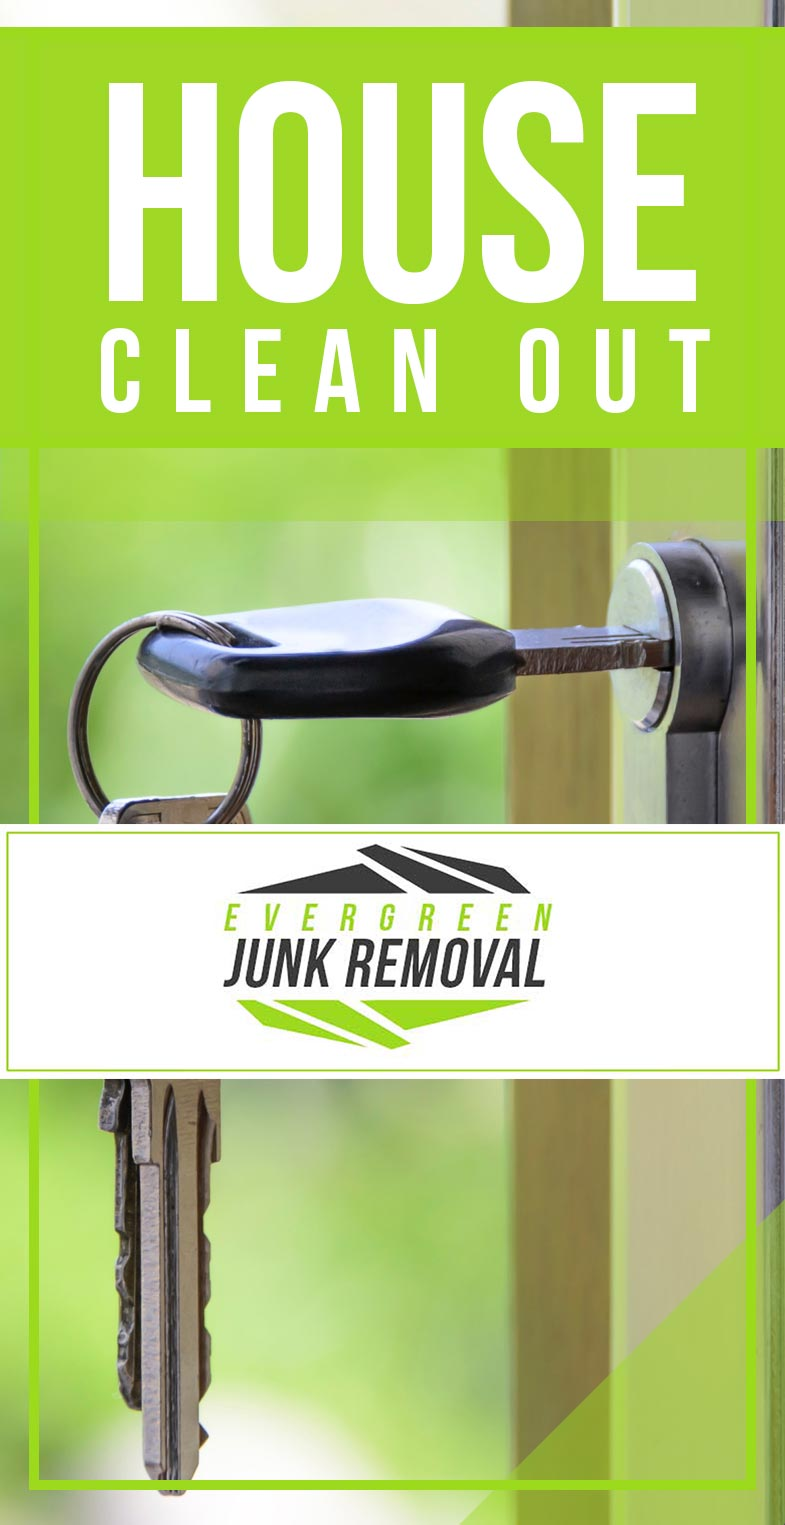 Junk Removal Tequesta House Clean Out